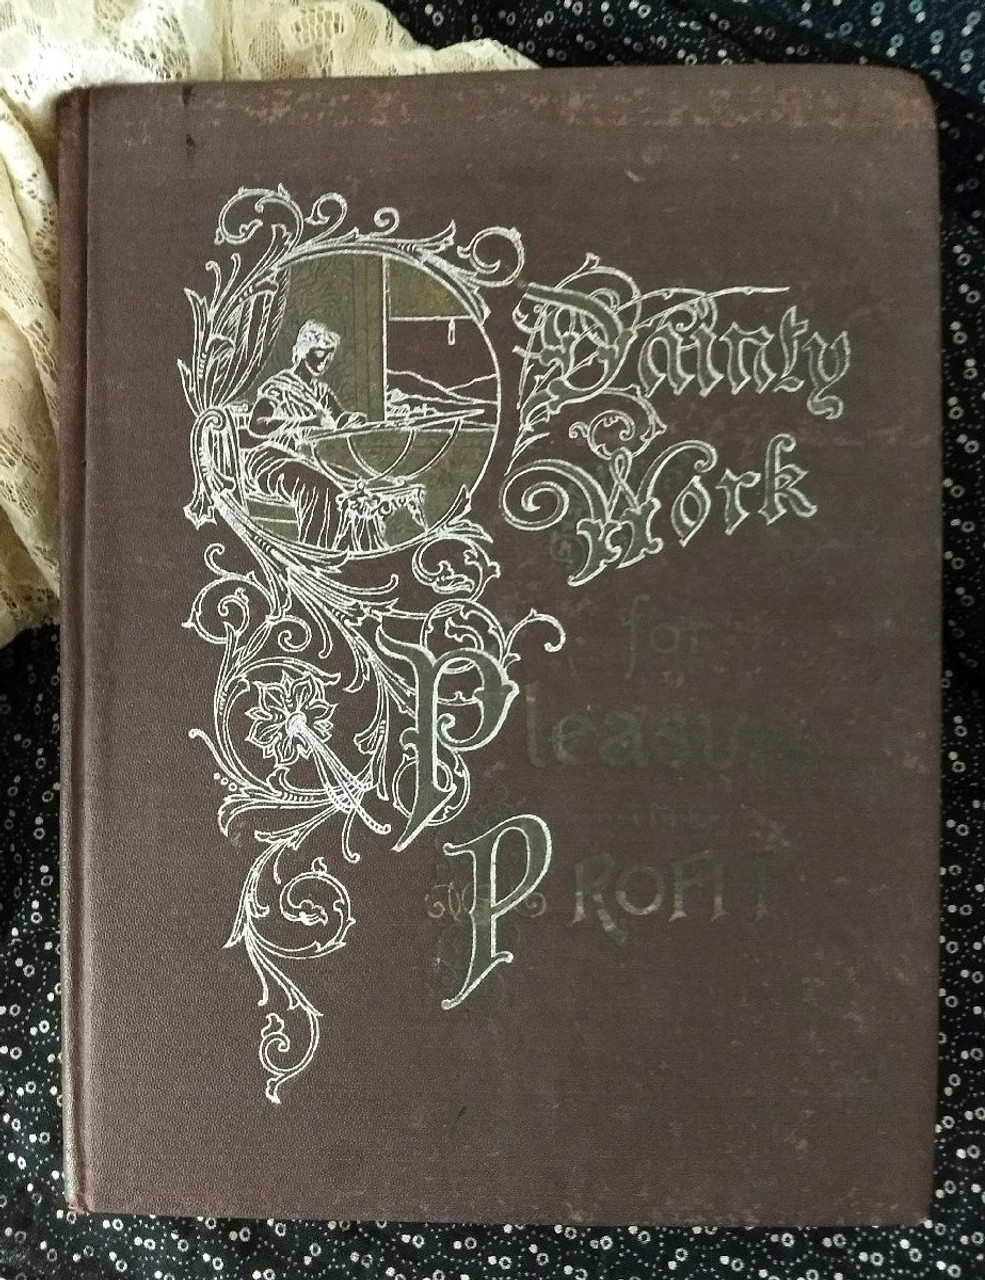 The Book Of Dainty Work For Pleasure Or Profit ~ Needlework of Lace Making, Crocheting, Knitting And More